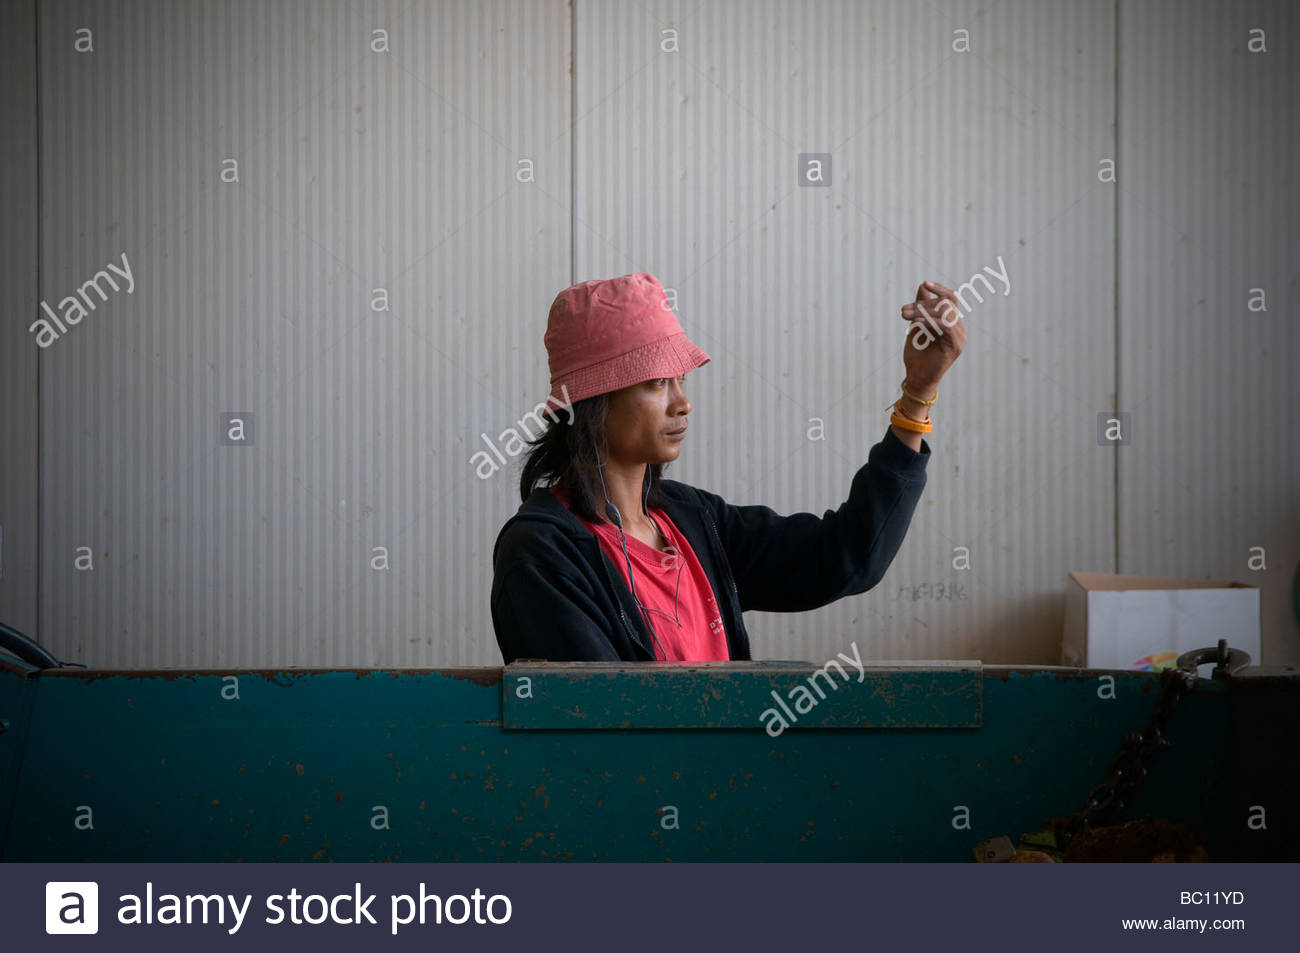 Thai migrant worker at work in Israel - Stock Image